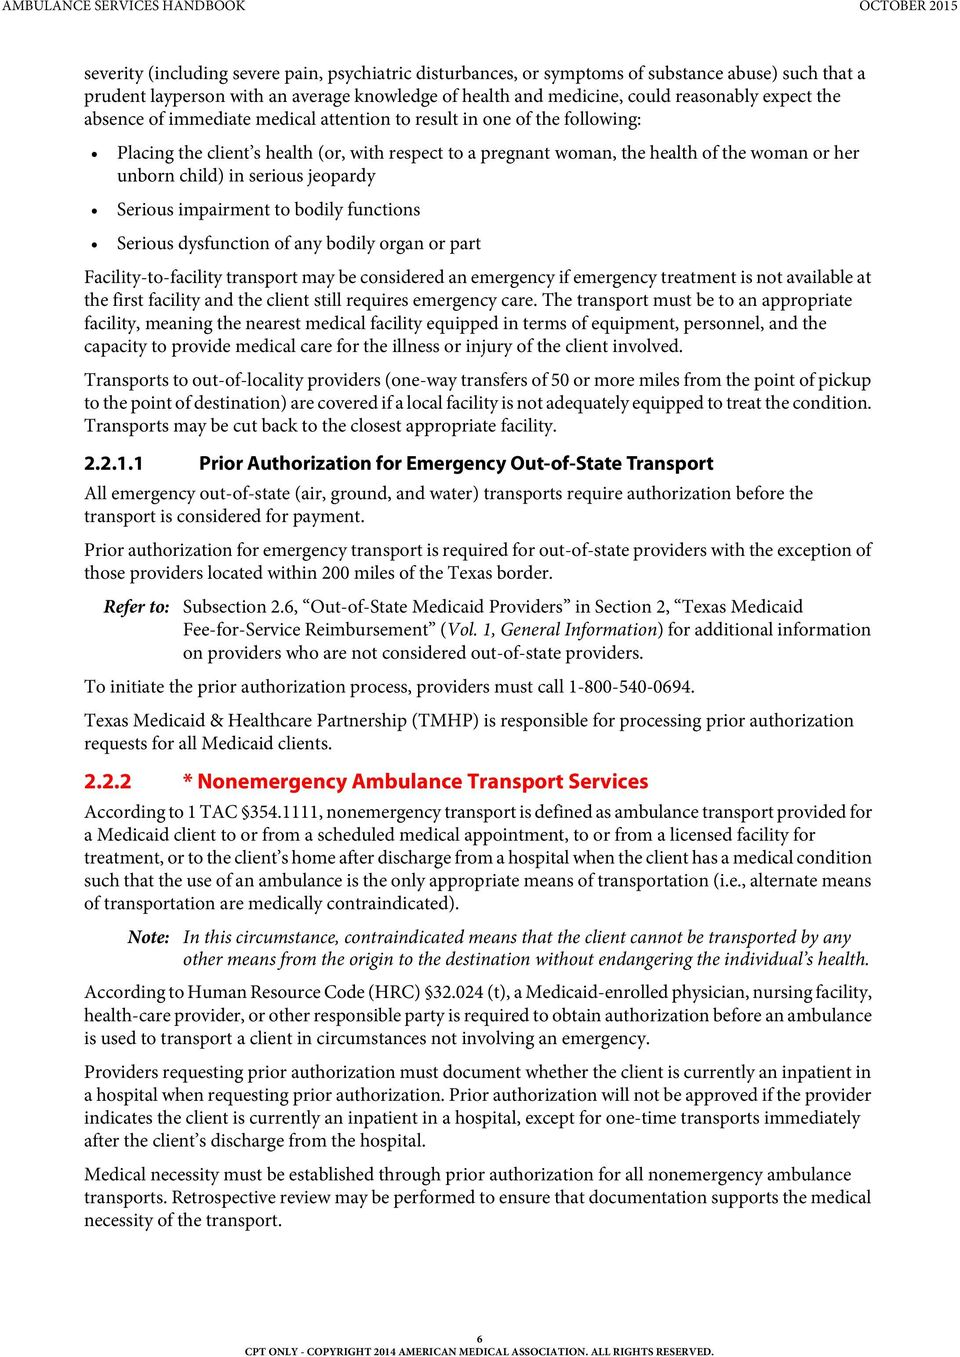 jeopardy Serious impairment to bodily functions Serious dysfunction of any bodily organ or part Facility-to-facility transport may be considered an emergency if emergency treatment is not available